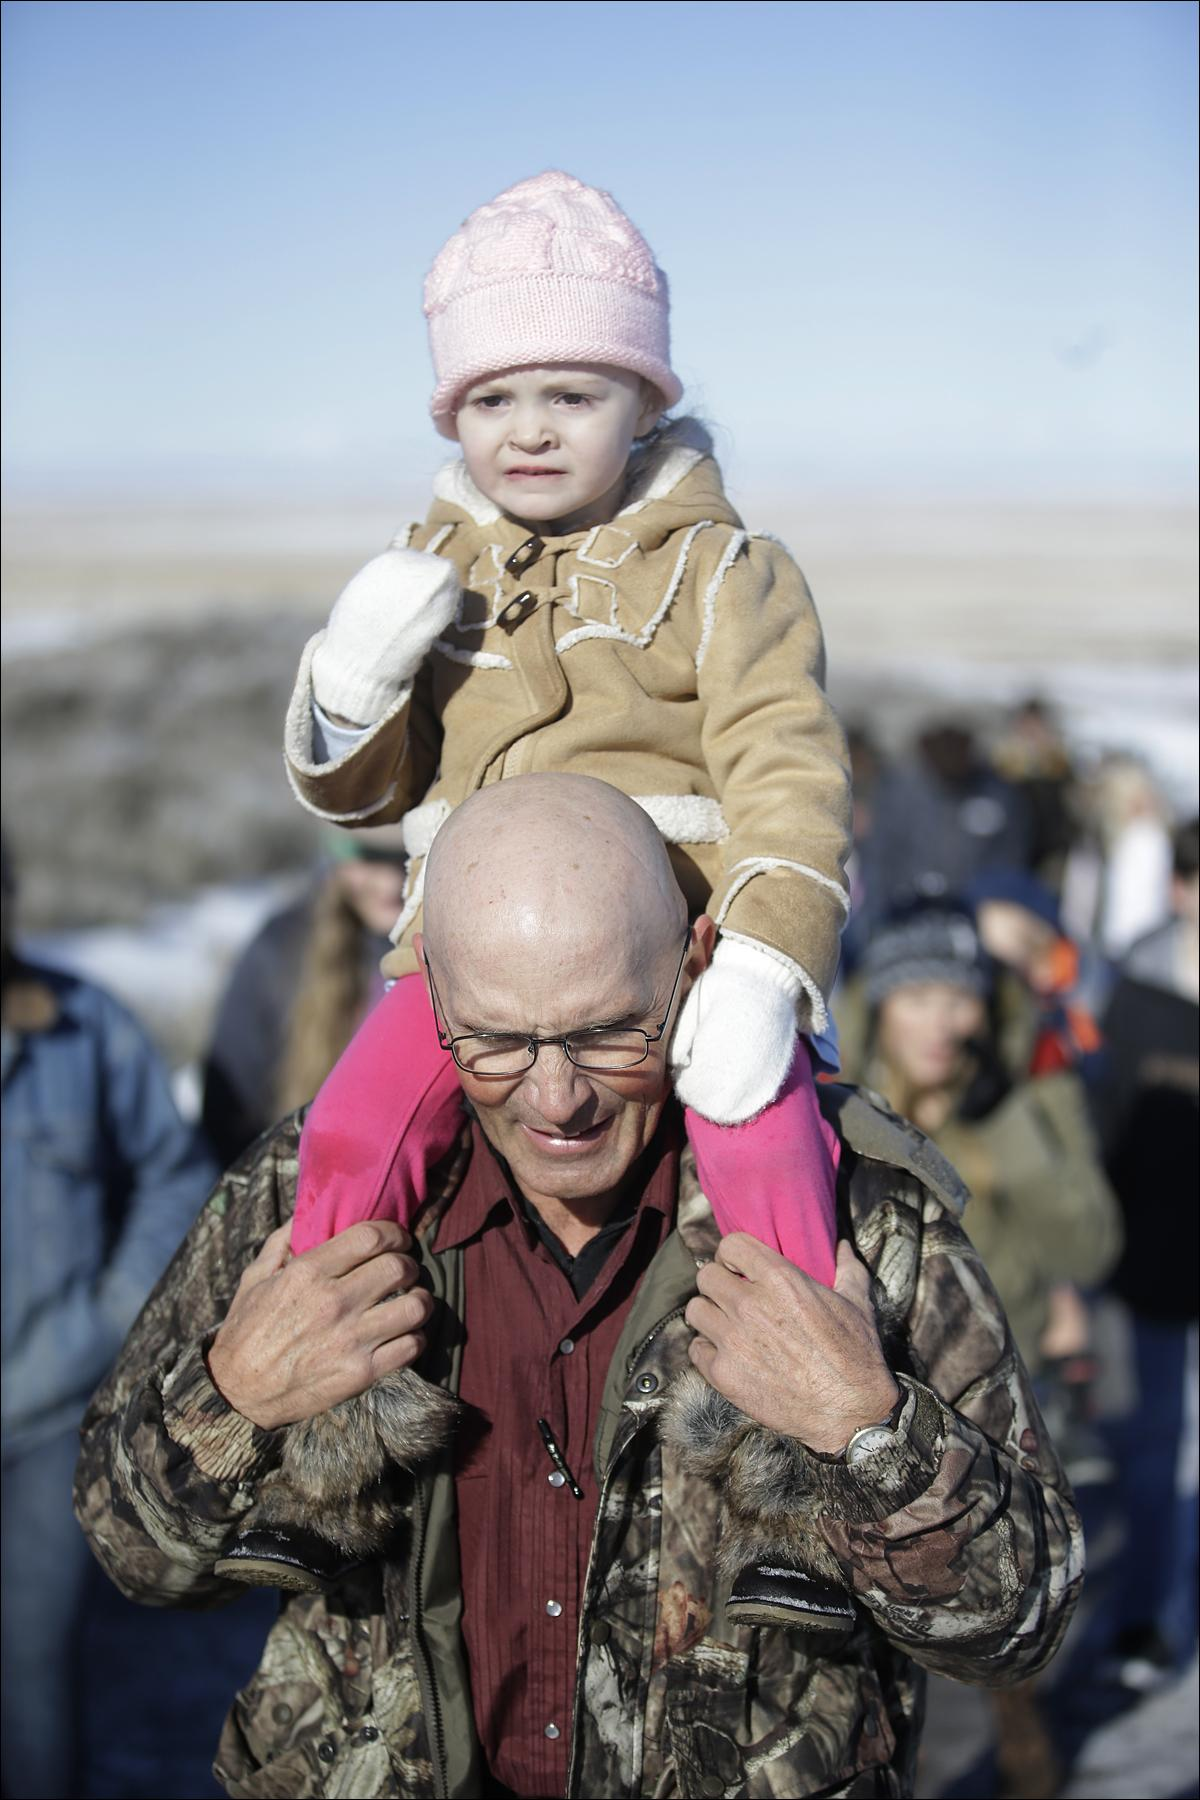 LaVoy Finicum, a rancher from Arizona,  carries his granddaughter Payton, 3, before a news conference at Malheur National Wildlife Refuge Friday, Jan. 8, 2016, near Burns, Ore. Ammon Bundy, the leader of a small, armed group occupying a national wildlife refuge in Oregon says the activists have no immediate plans to leave. Bundy spoke to reporters Friday, a day after meeting with a local sheriff who asked the group to go. (AP Photo/Rick Bowmer)